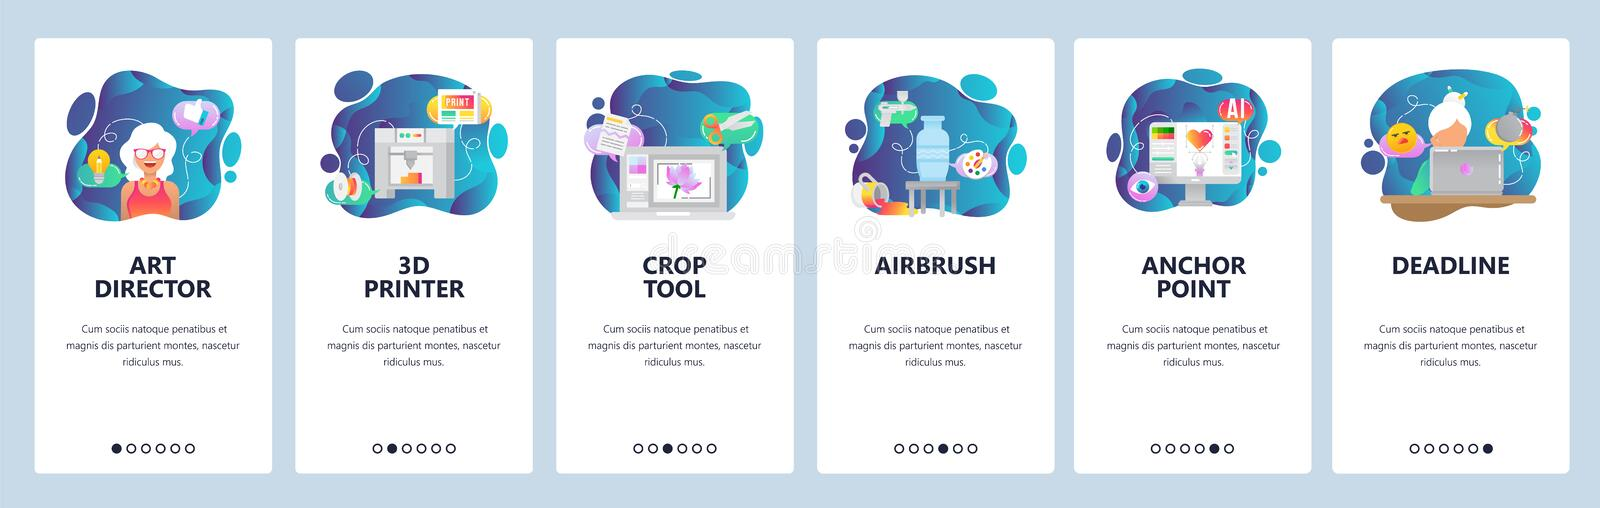 Mobile app onboarding screens. 3d printer, airbrush, painting, digital illustration, project deadline. Menu vector. Banner template for website and mobile royalty free illustration